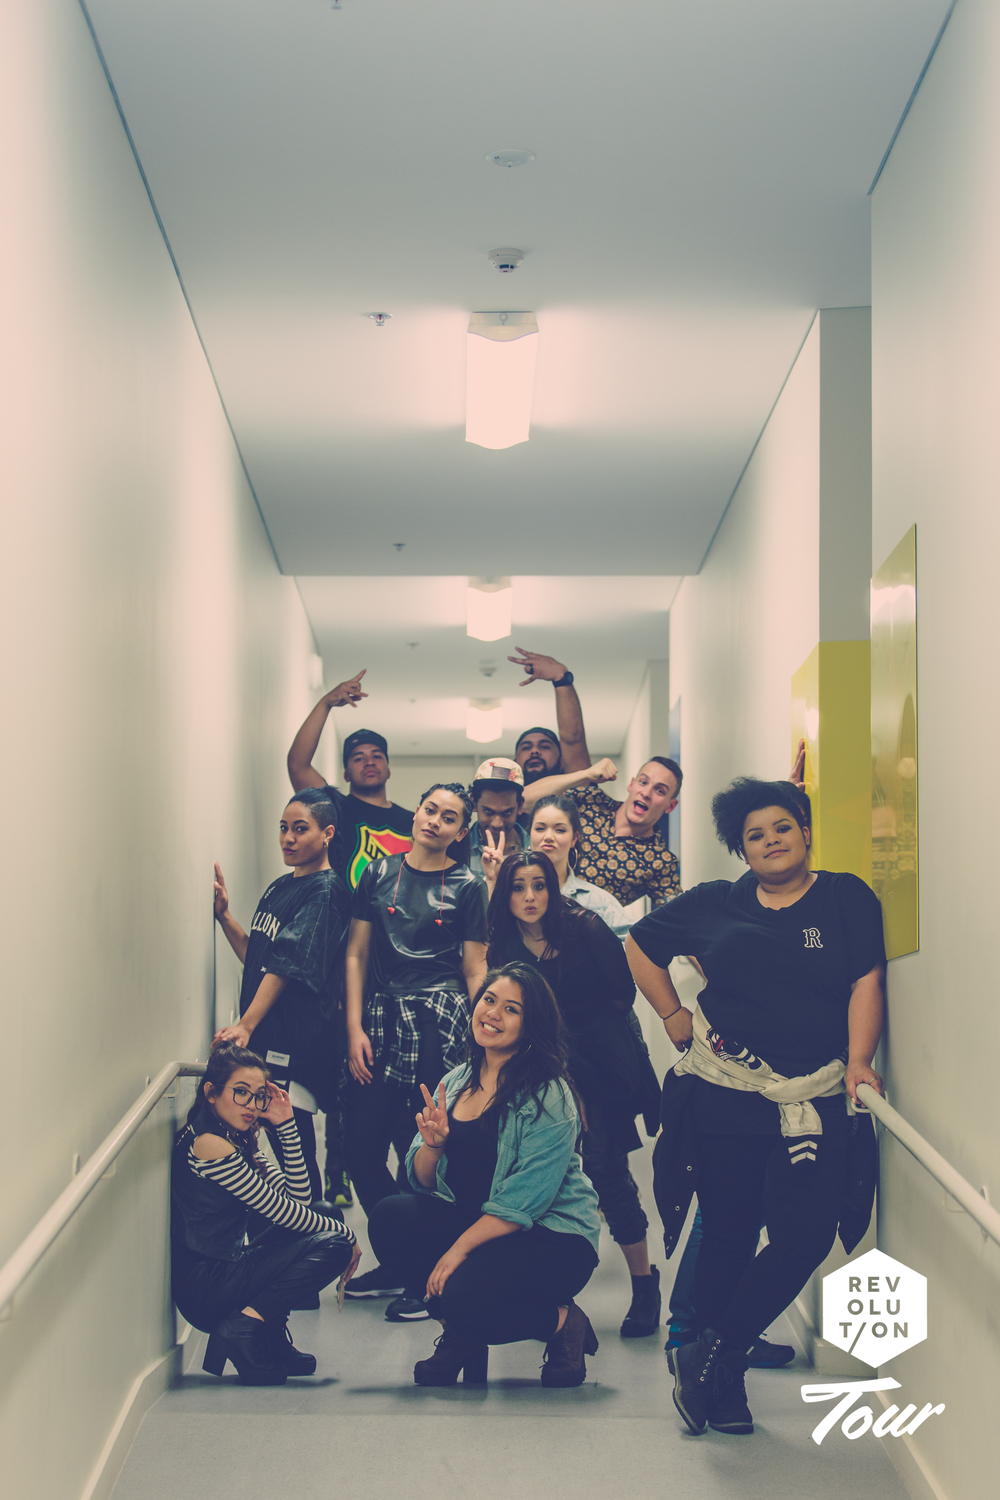 The crew backstage at the VCC concert